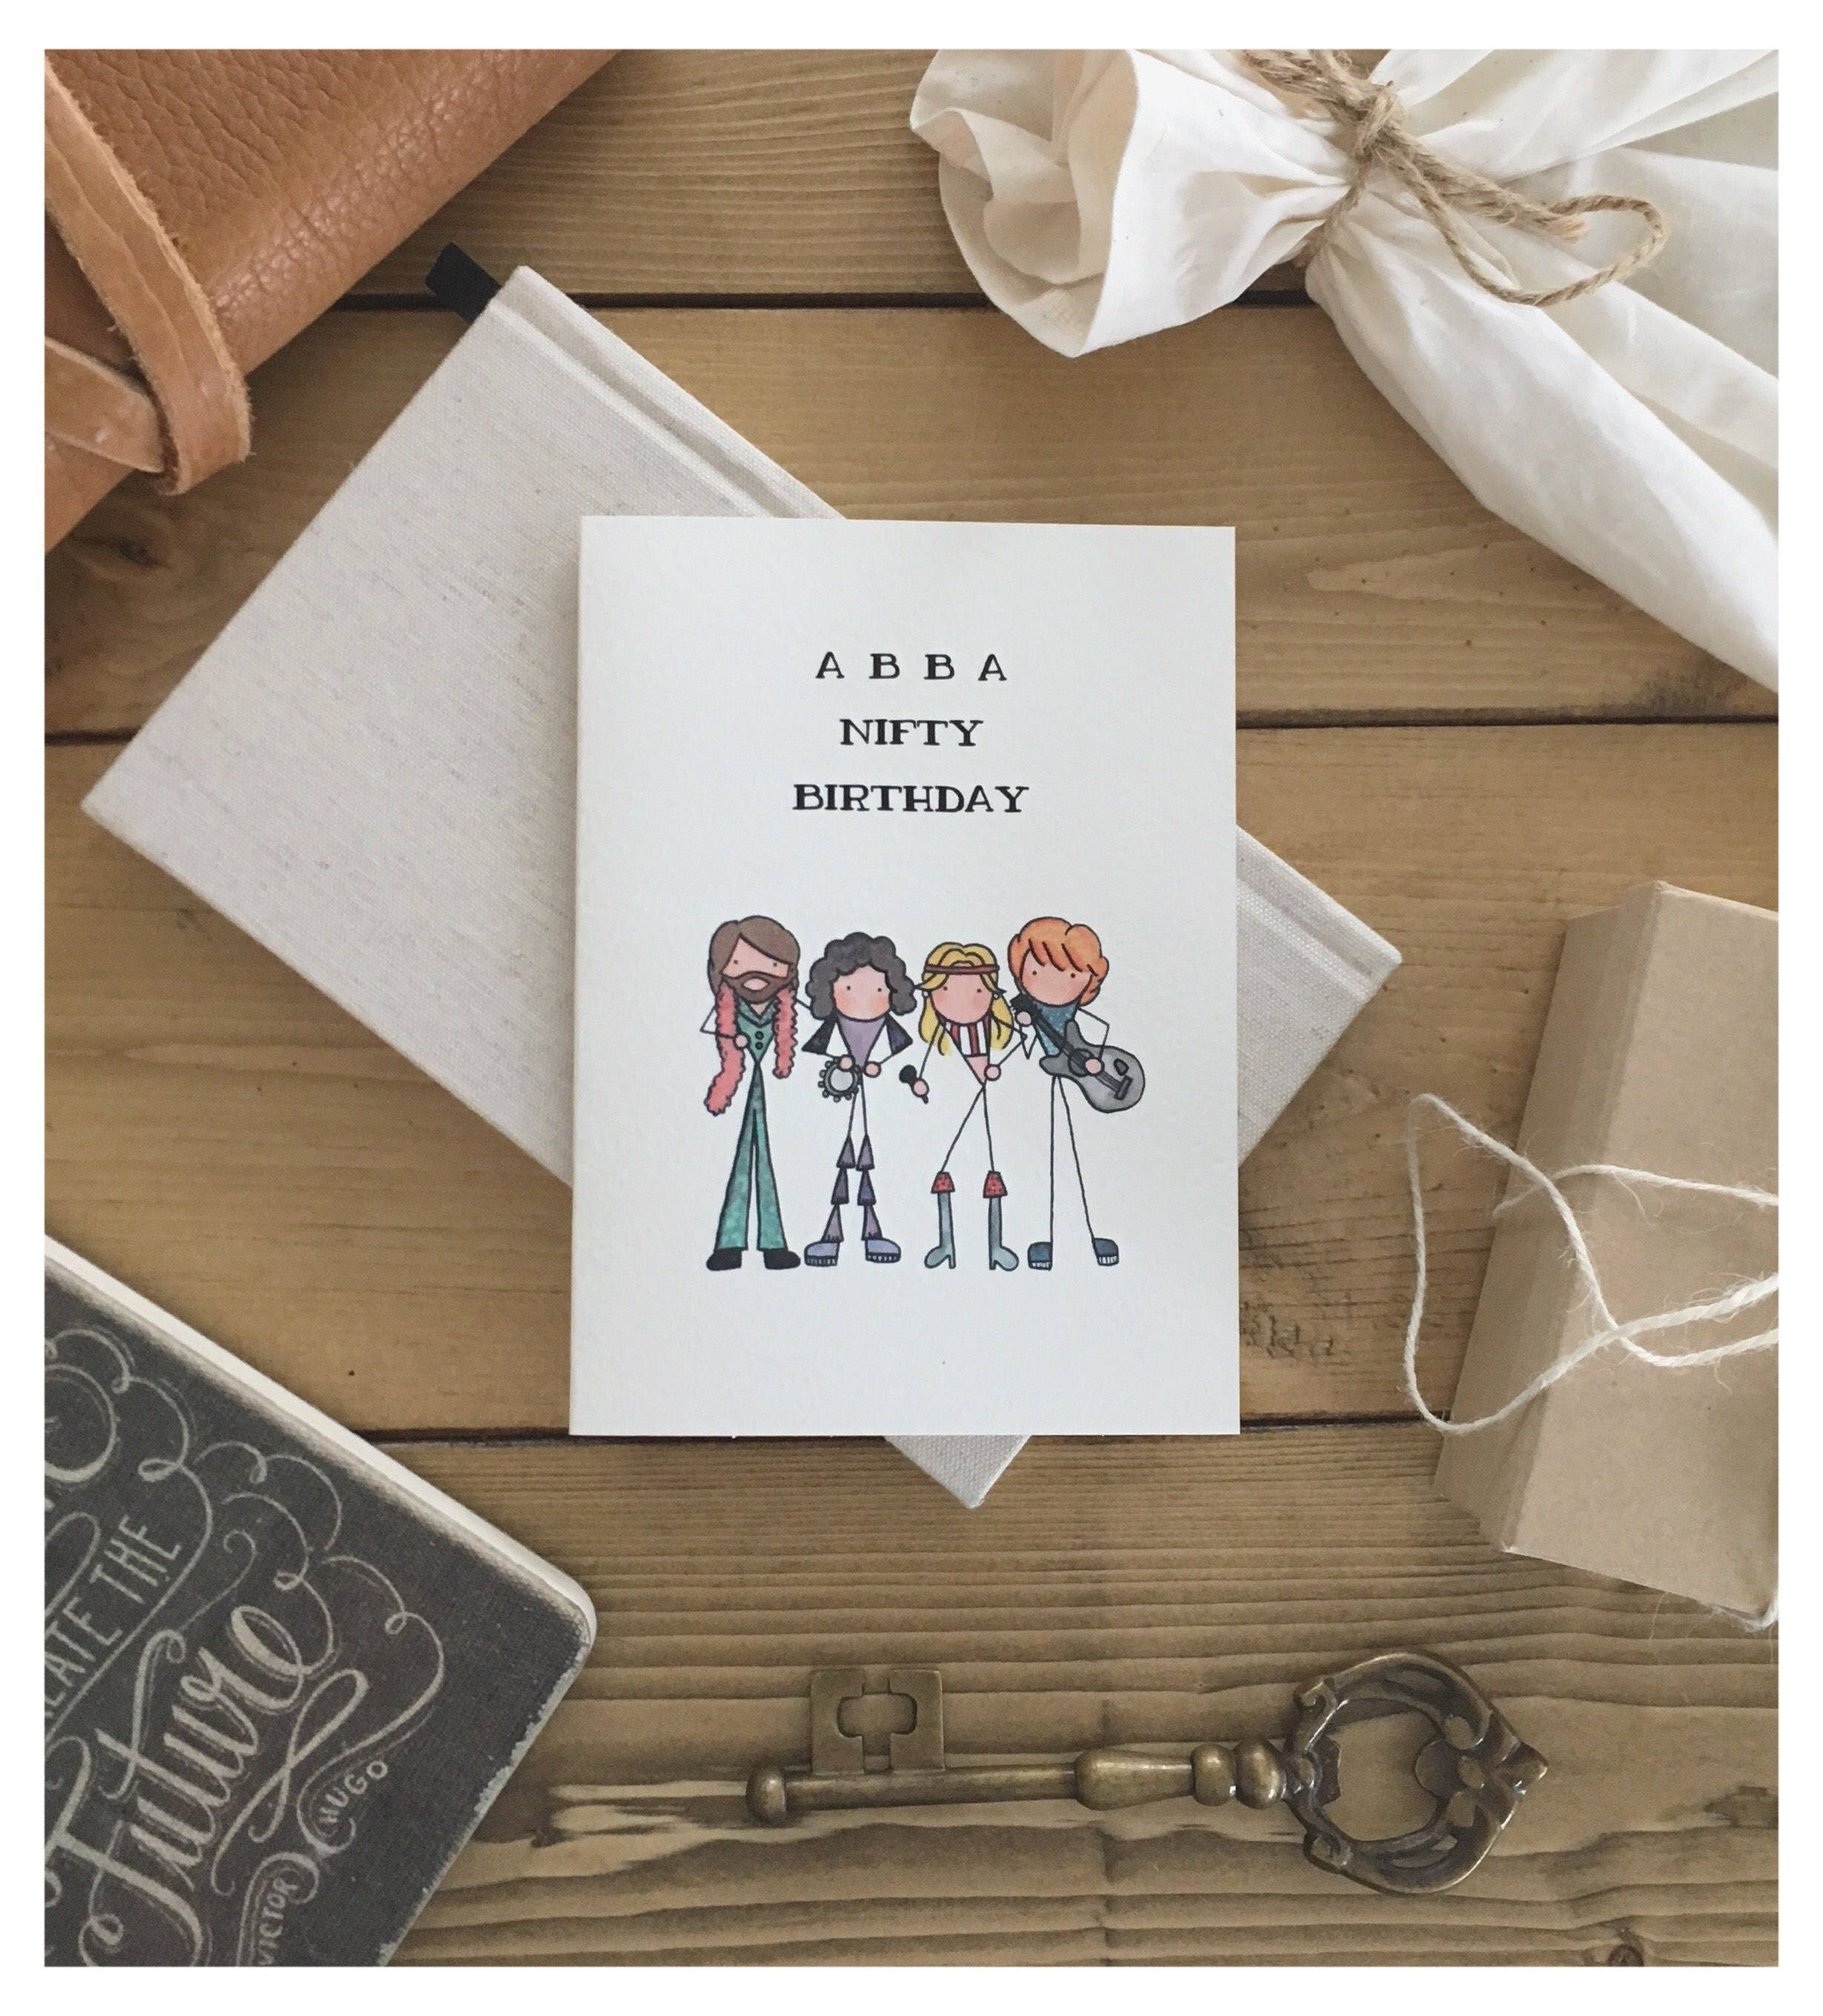 ABBA CARD // Birthday Card, Greeting Card, Funny Card, 50th Birthday,  Punny, Pun Card, Happy Birthday, Funny Birthday Card, Abba, Cute Card